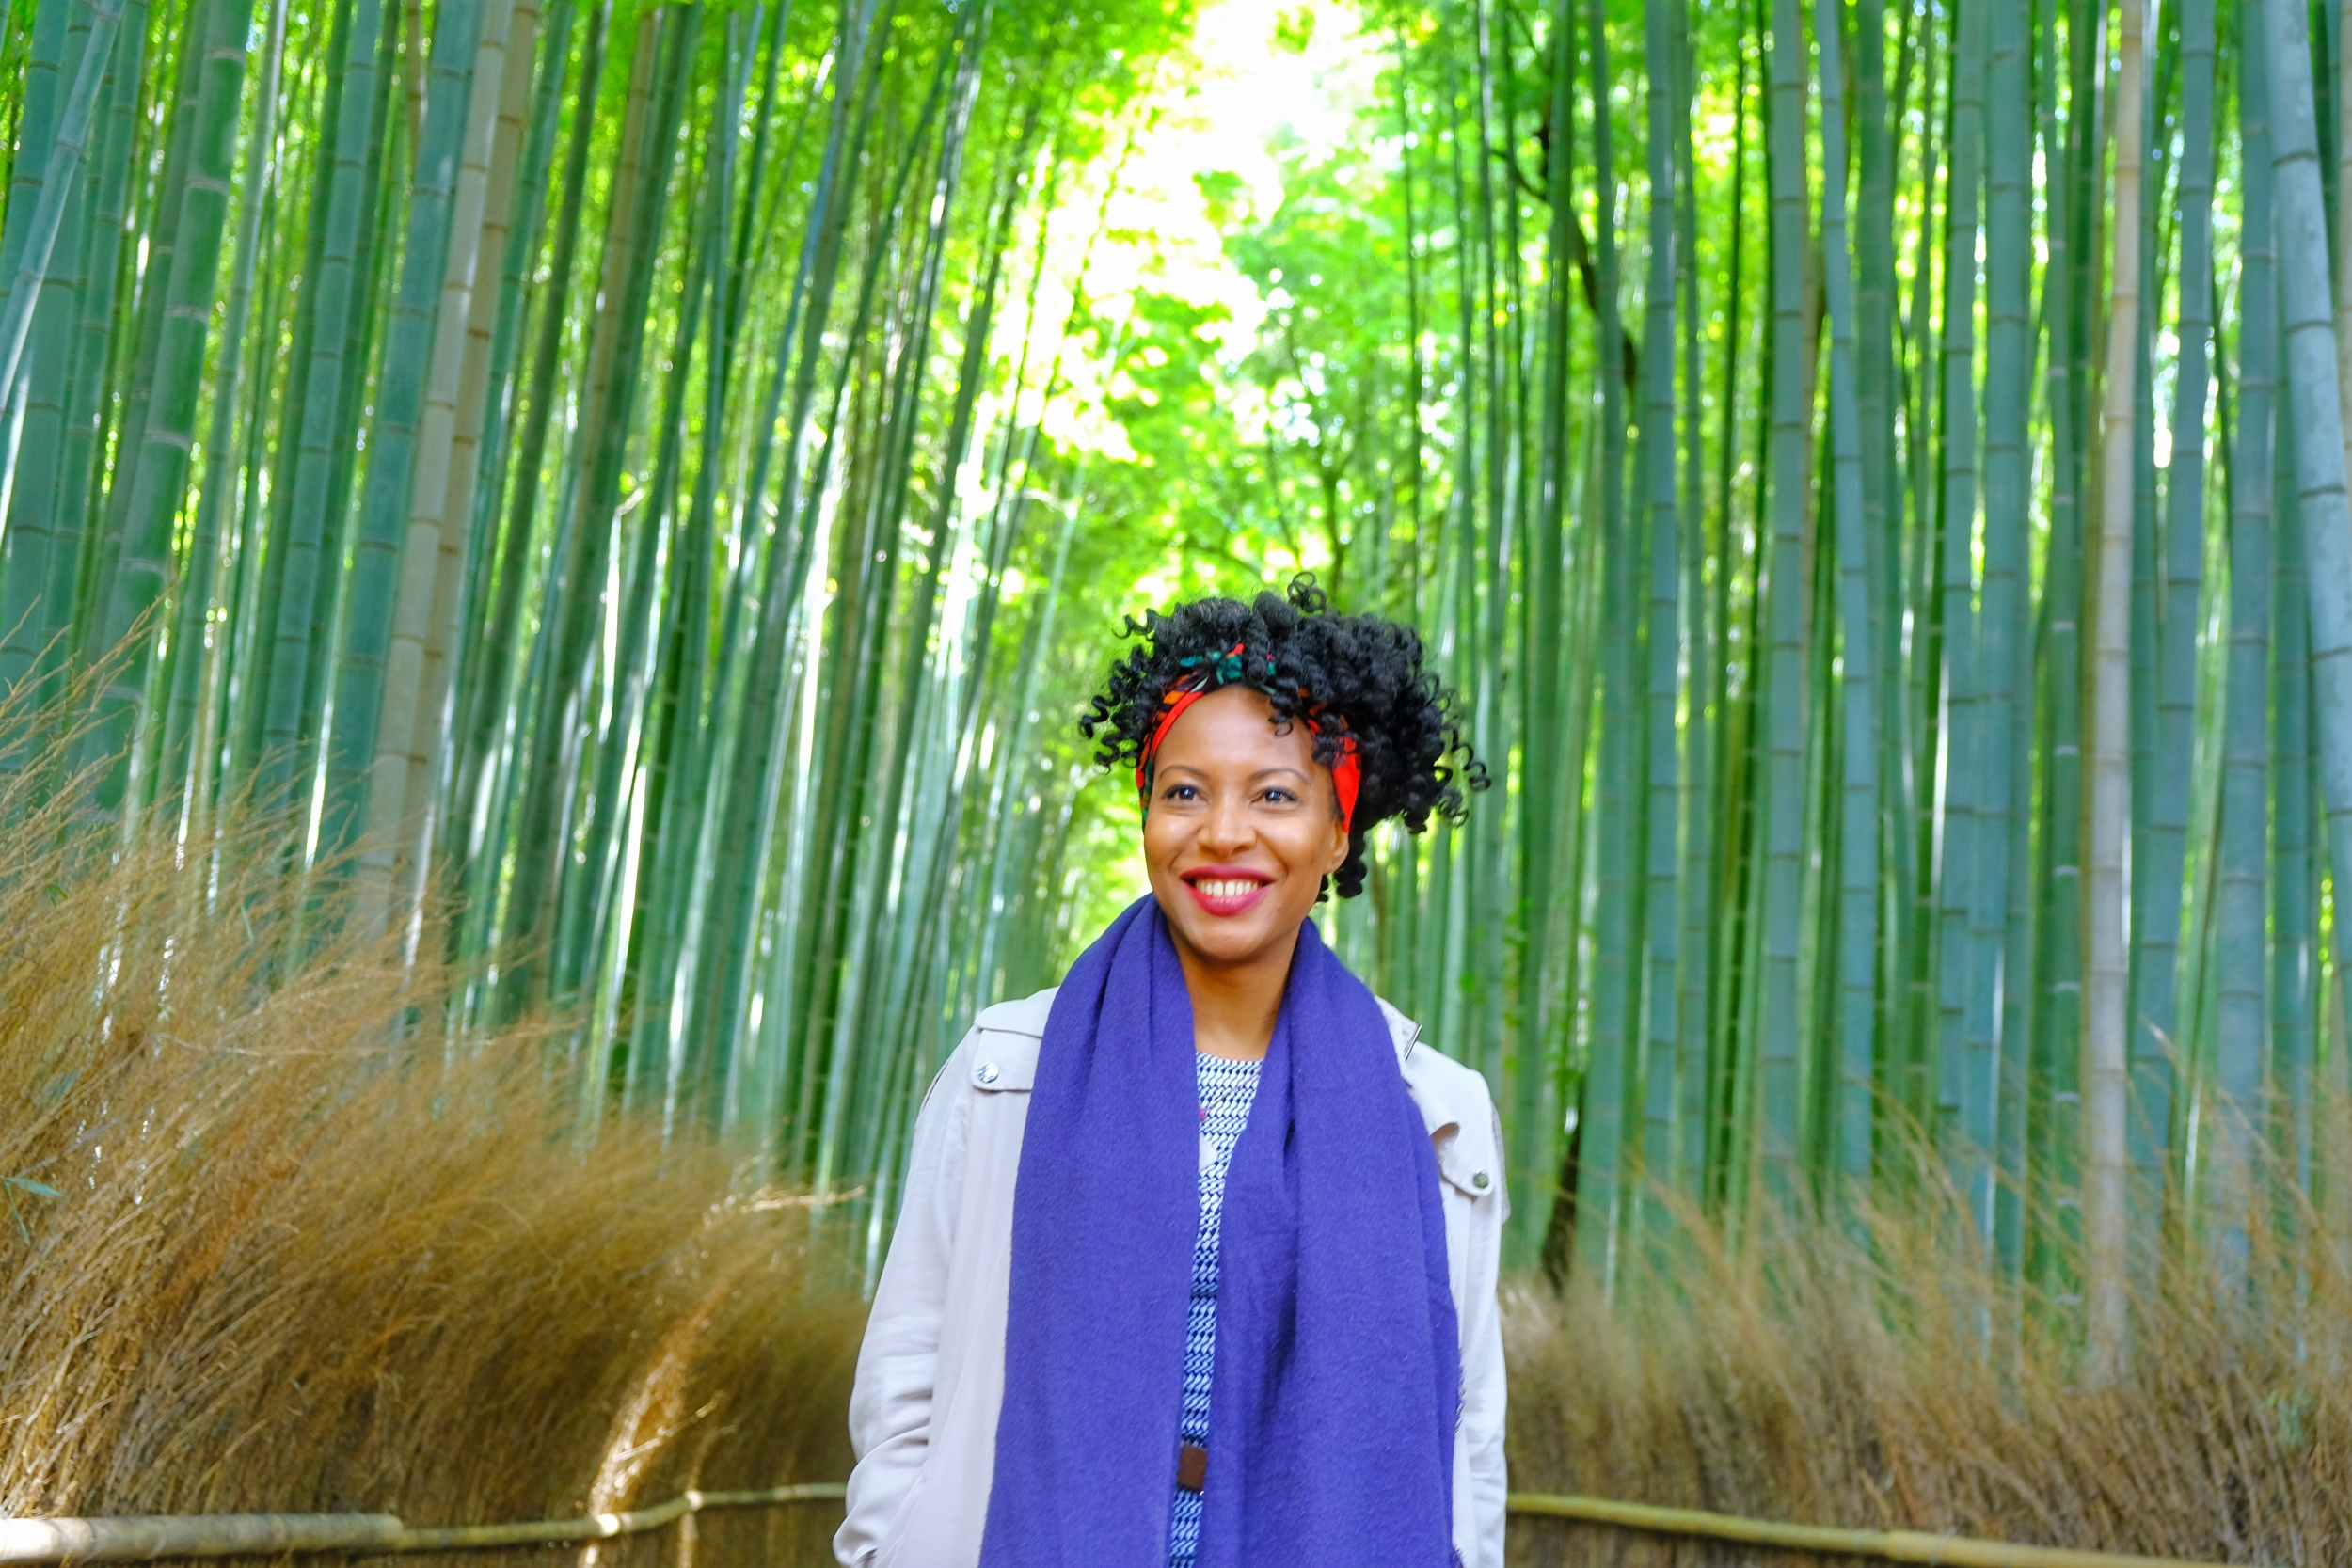 Bamboo Grove Kyoto - Post Office Travel Blogger Awards 2018